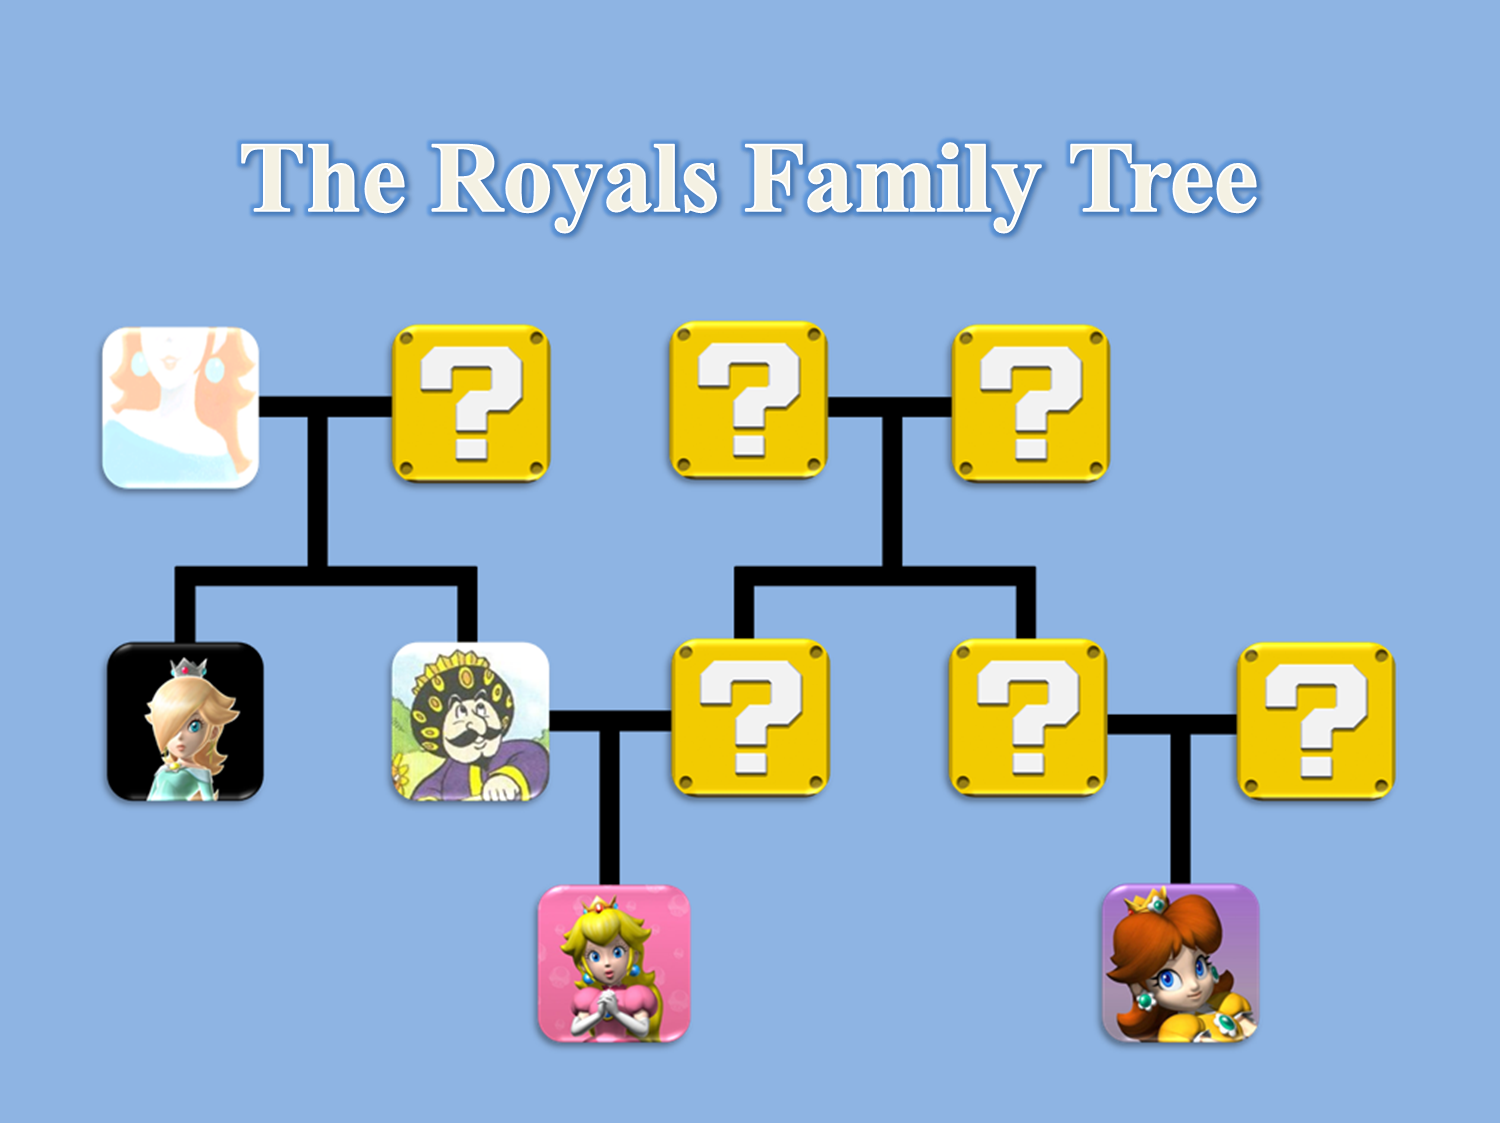 The Royals Family Tree by limabiel on DeviantArt